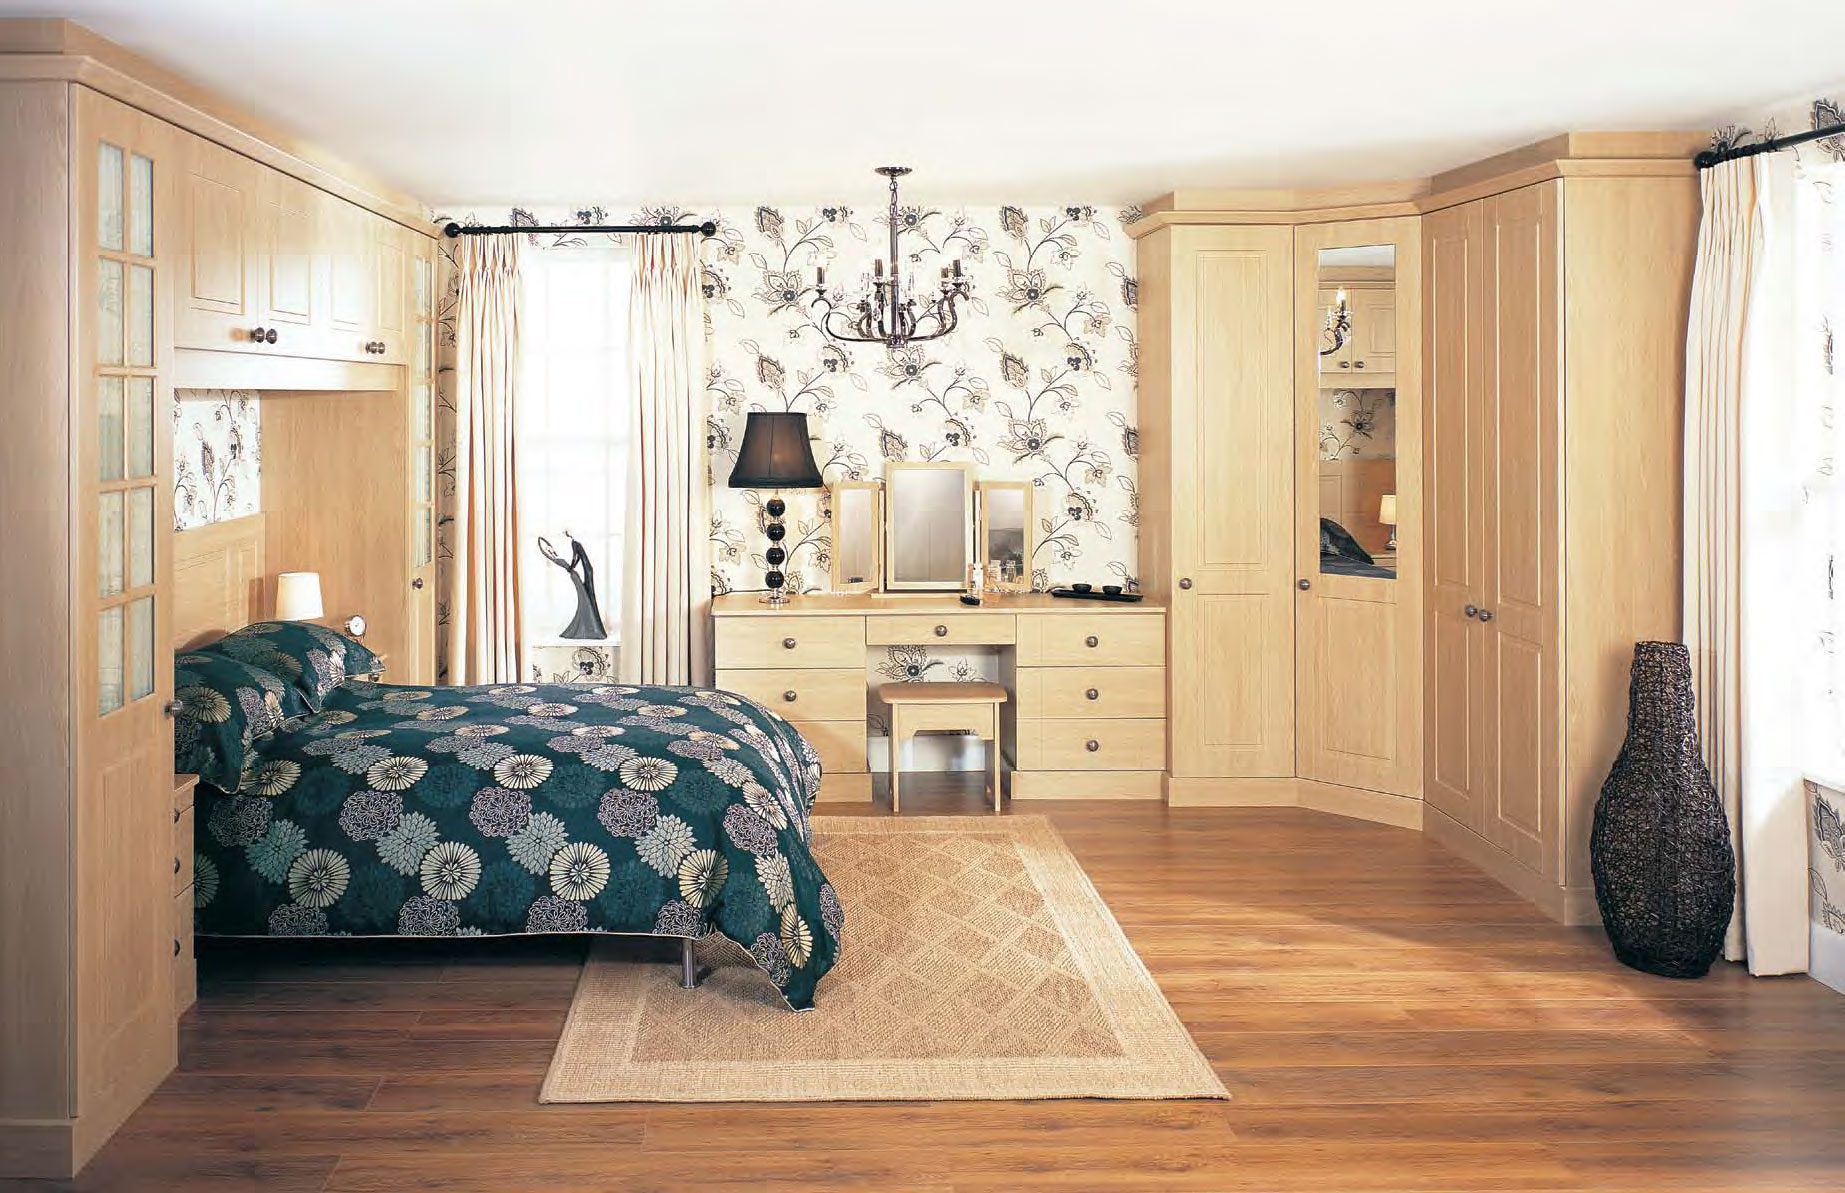 fitted wardrobes designer cost London